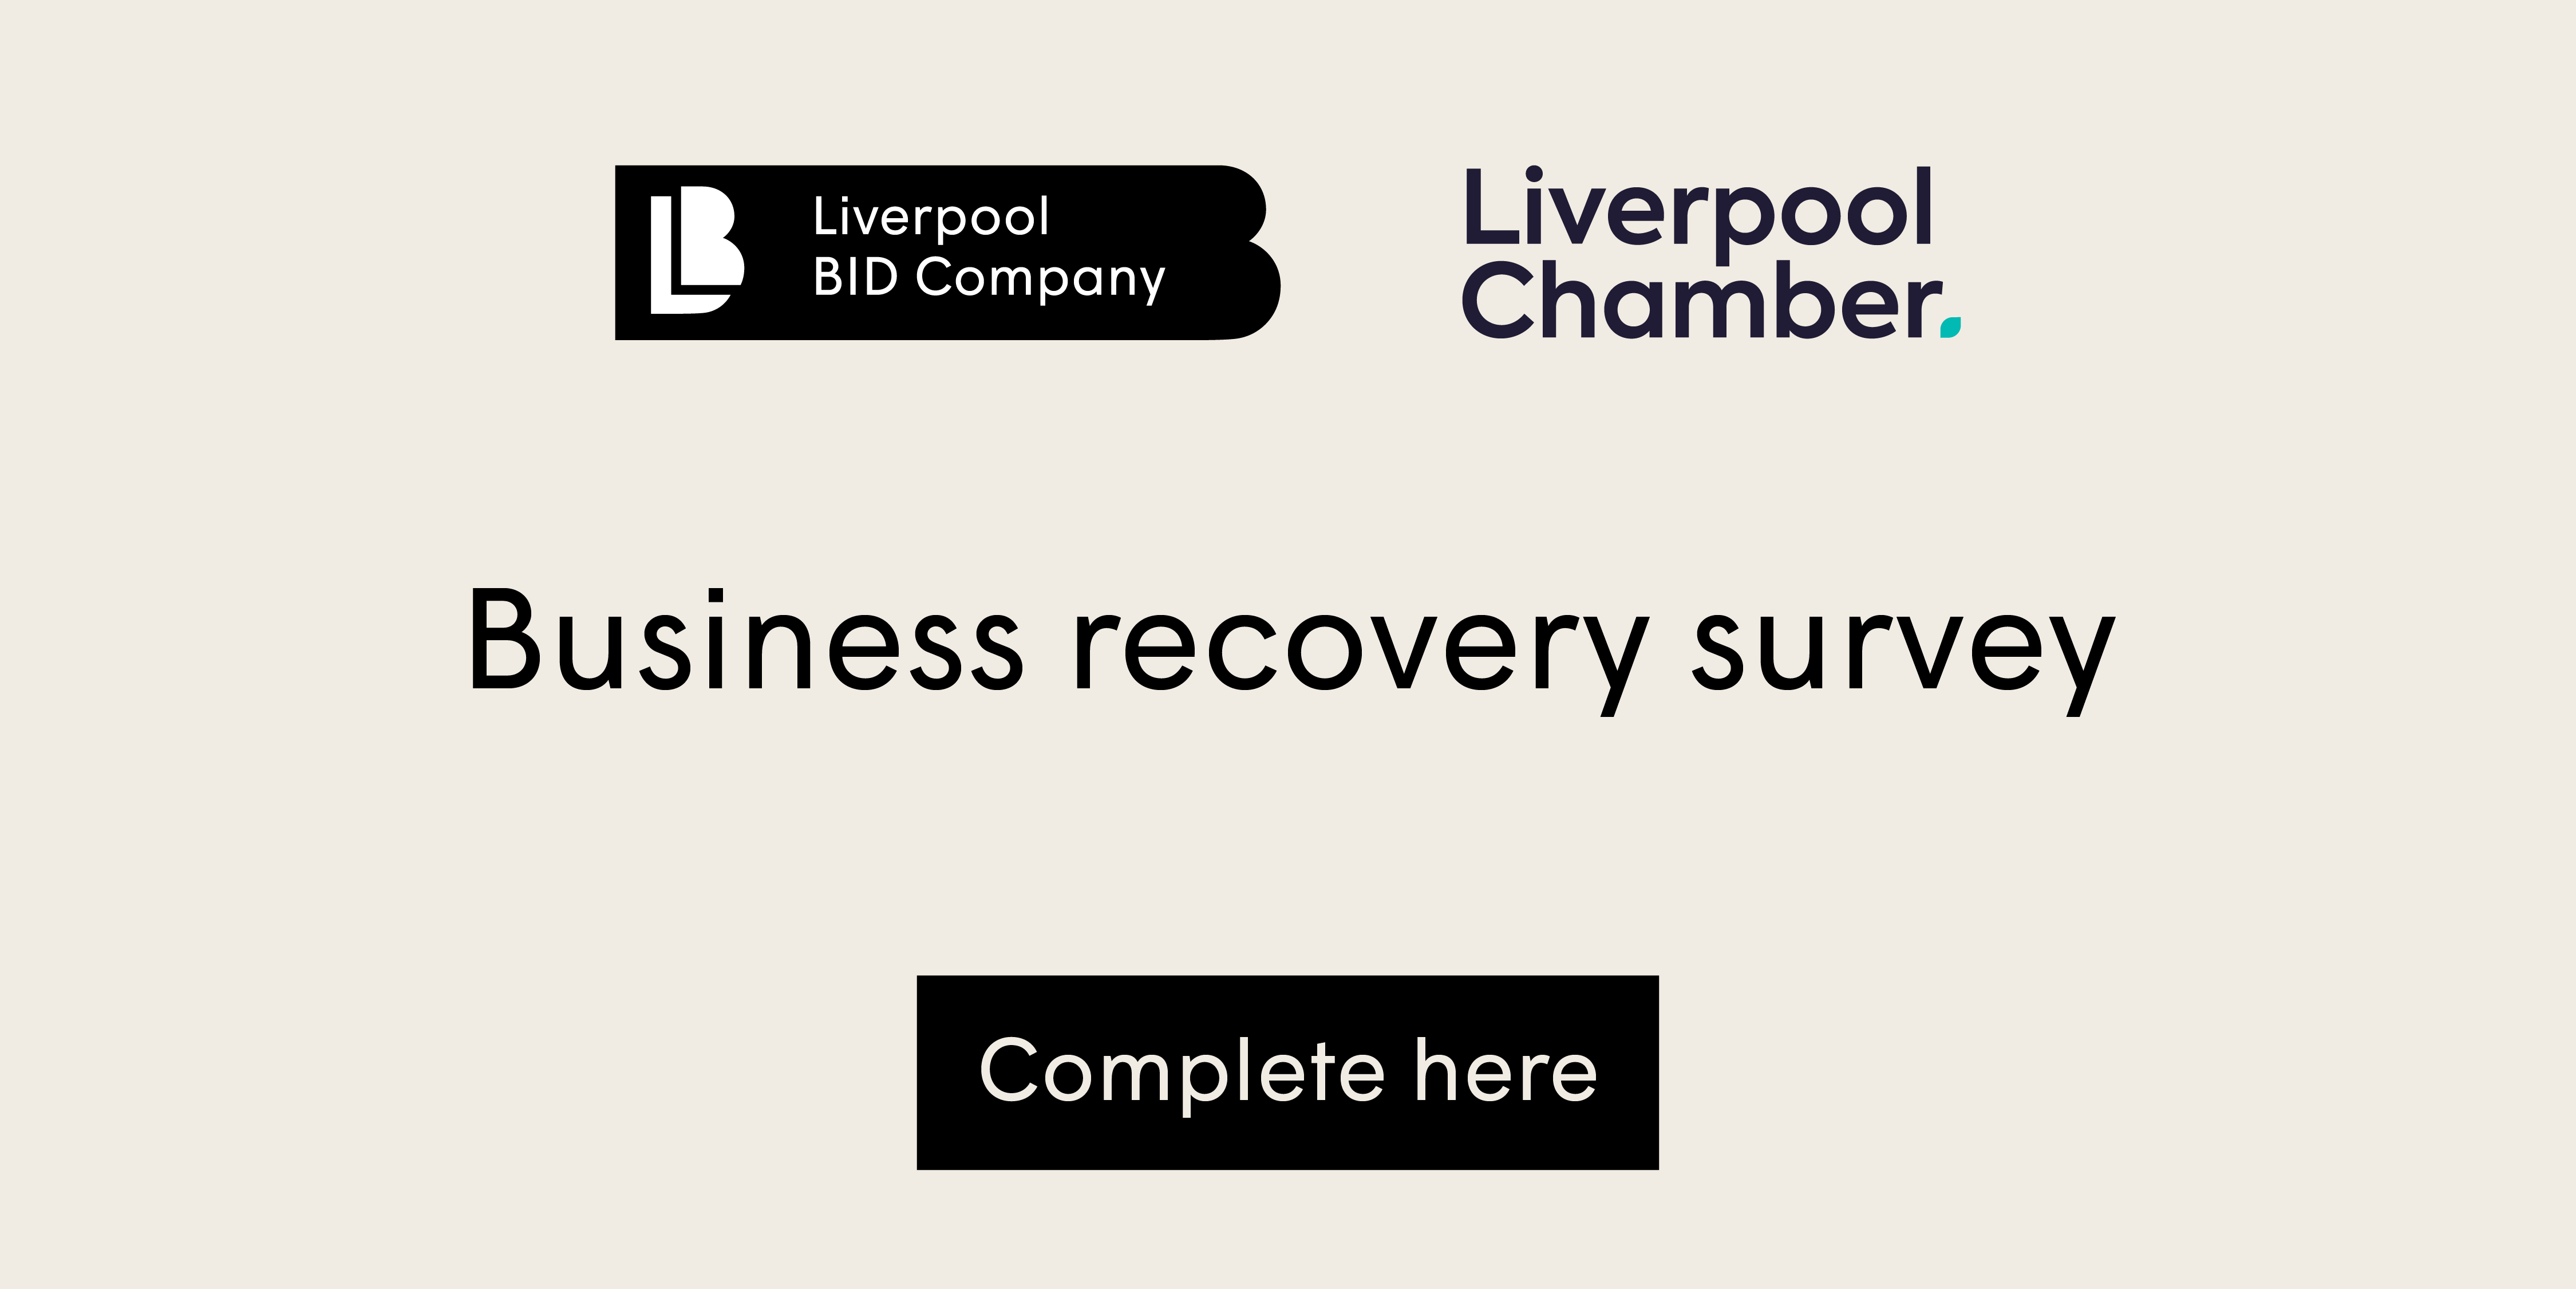 Business Recovery Survey - Liverpool BID Company - Liverpool Chamber-02